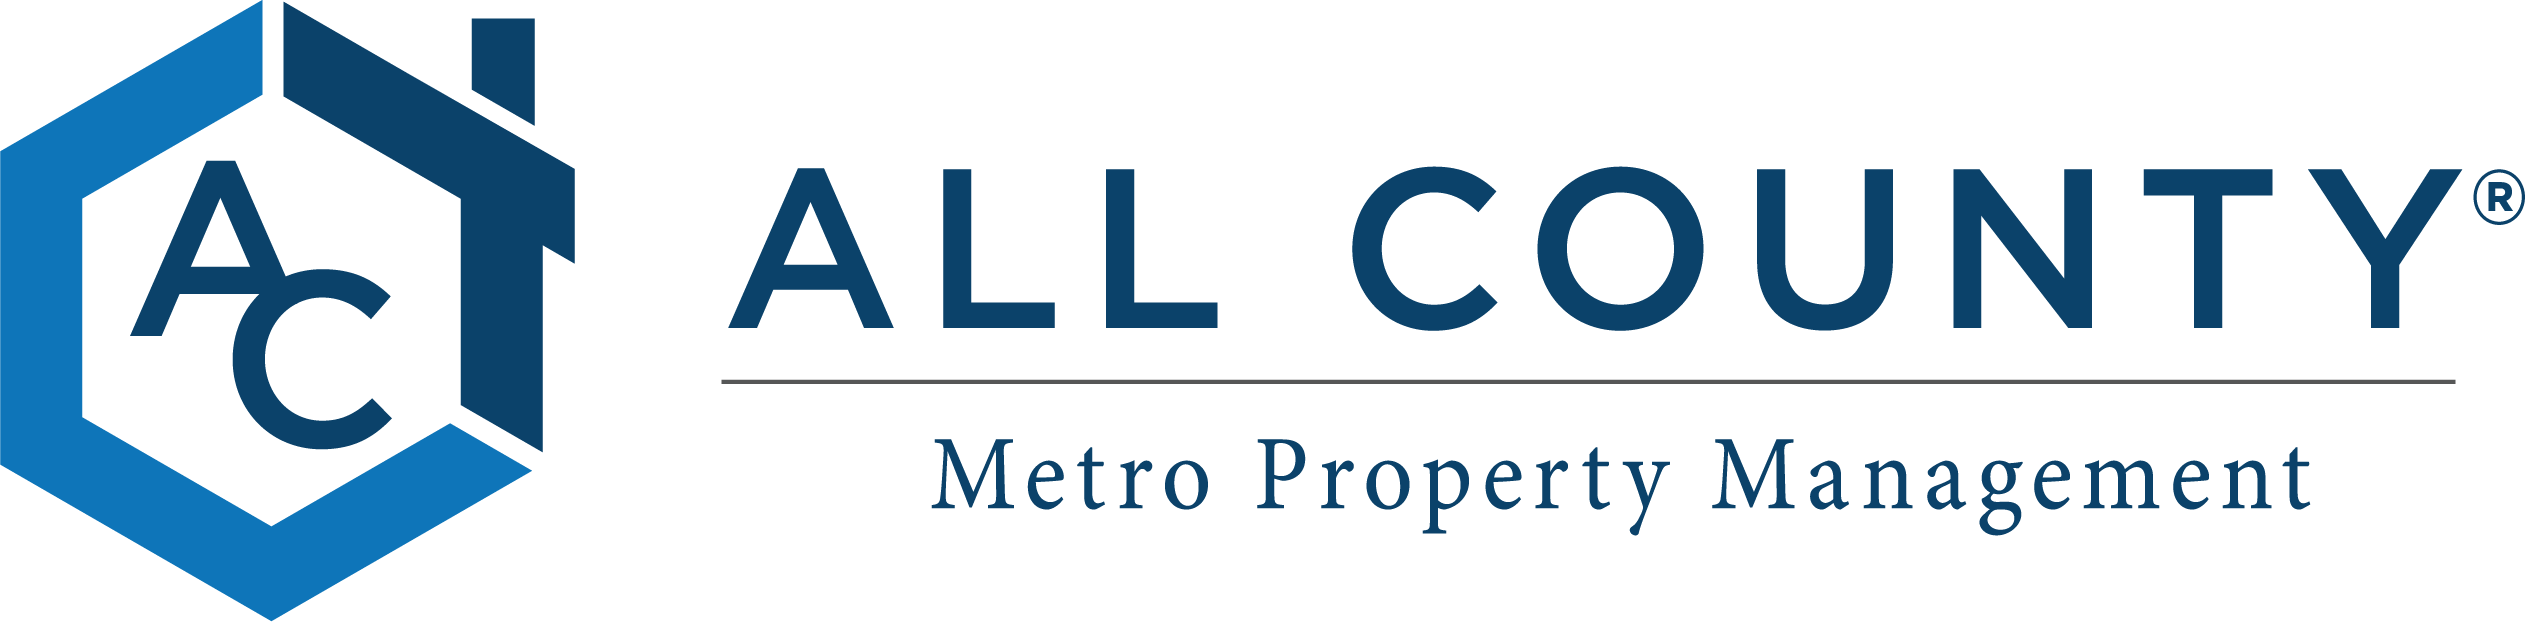 All County Metro Property Management